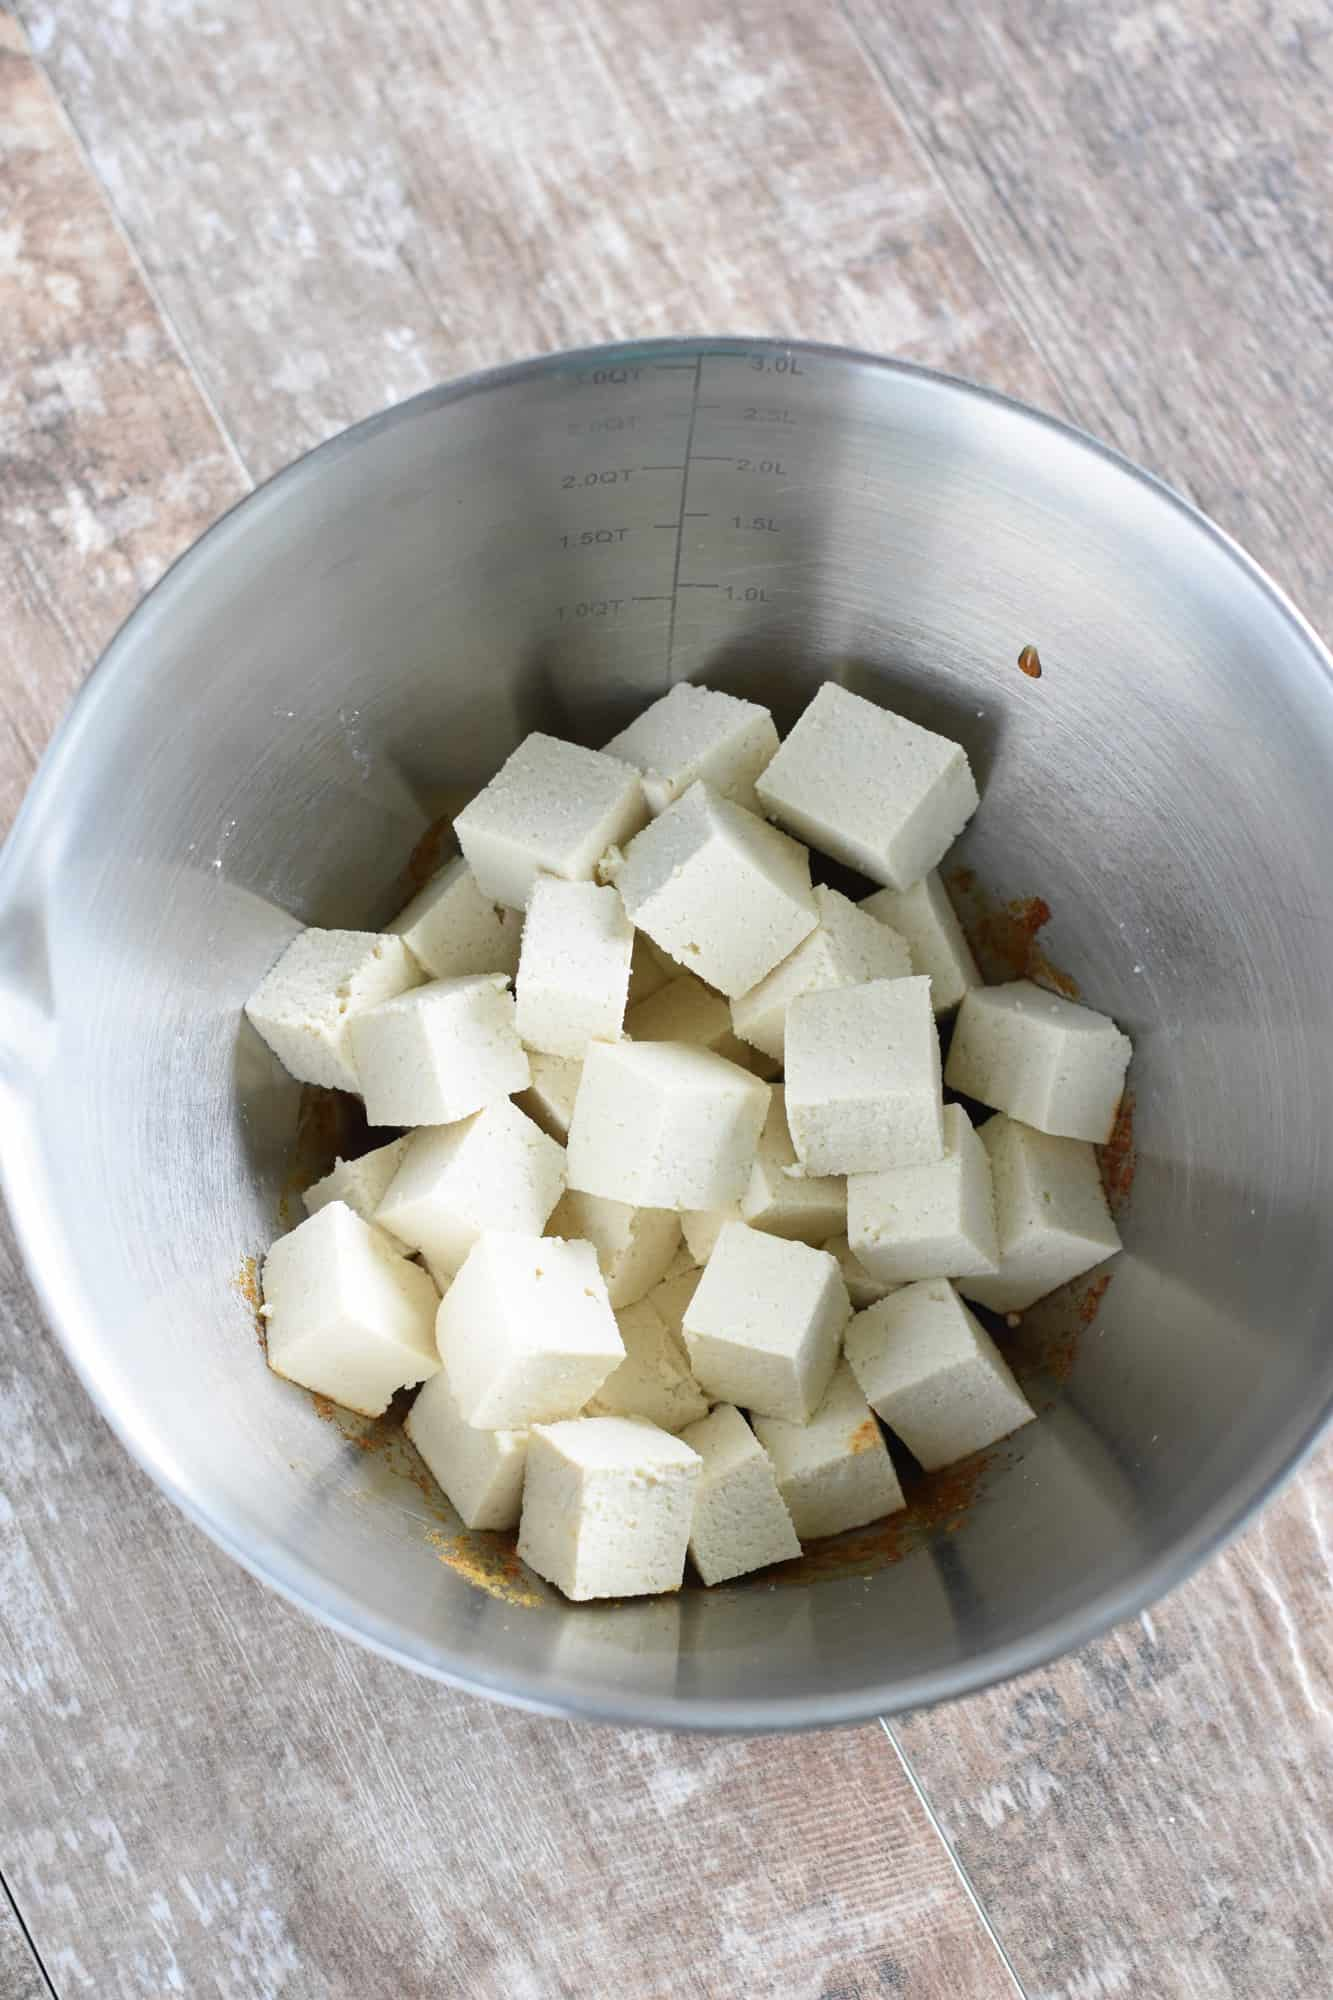 Tofu pieces added to the marinade in the mixing bowl